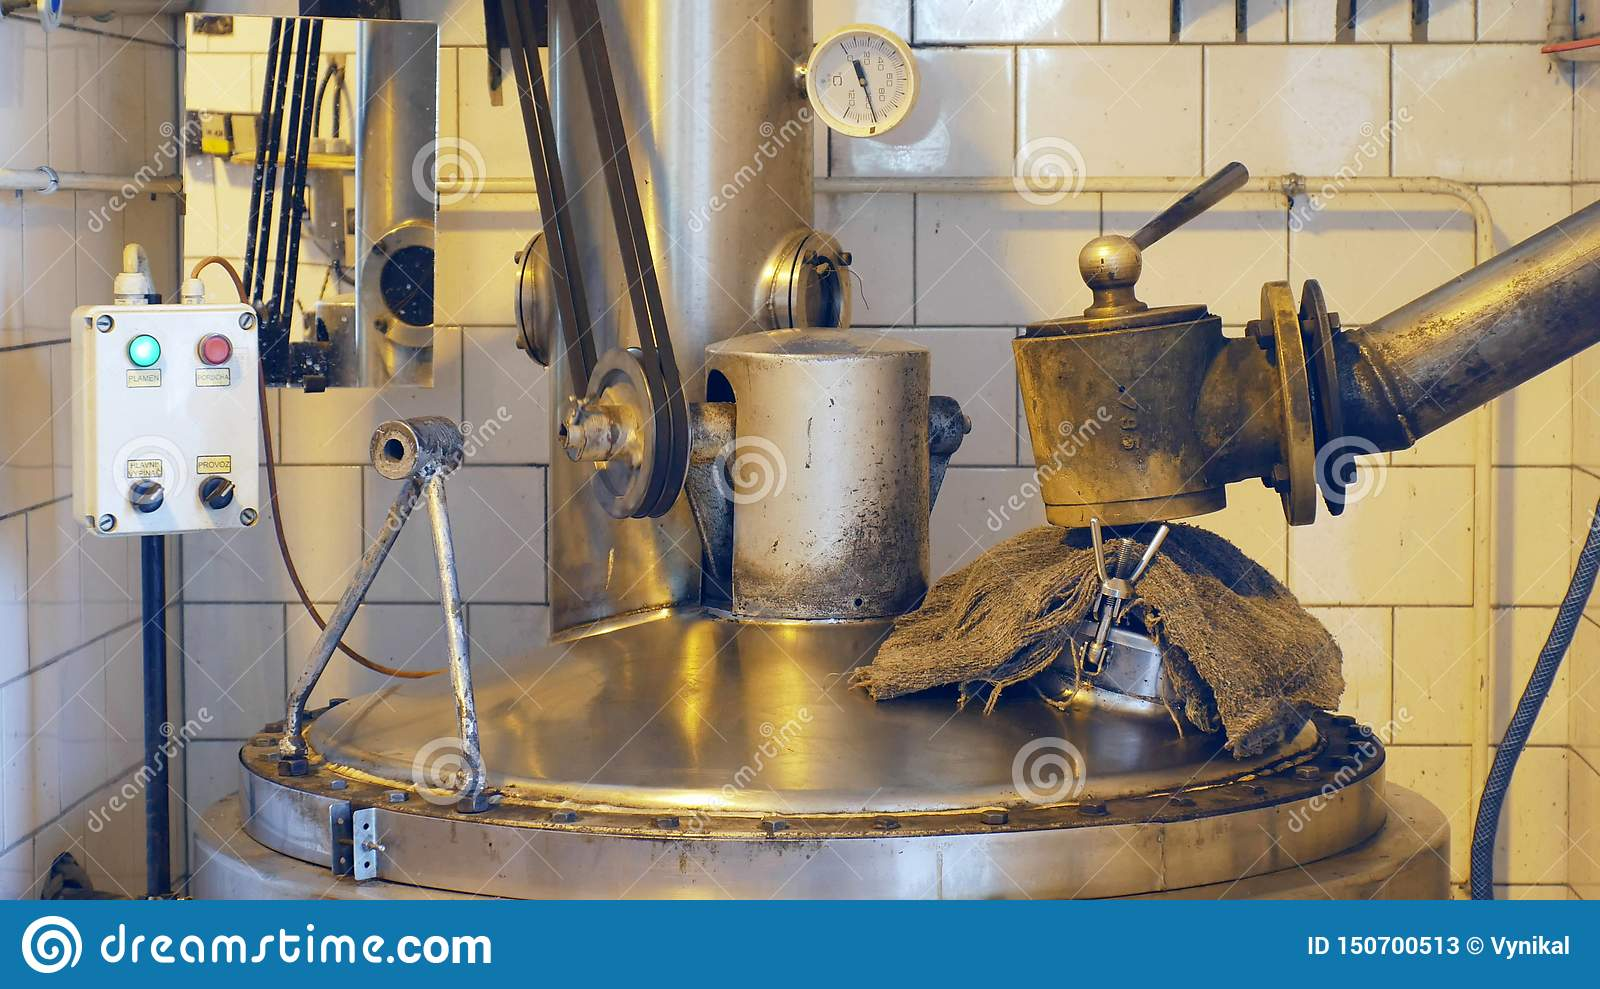 Growing distillery for the production of plum brandy by firing in a gas boiler, alembic pot still during process of